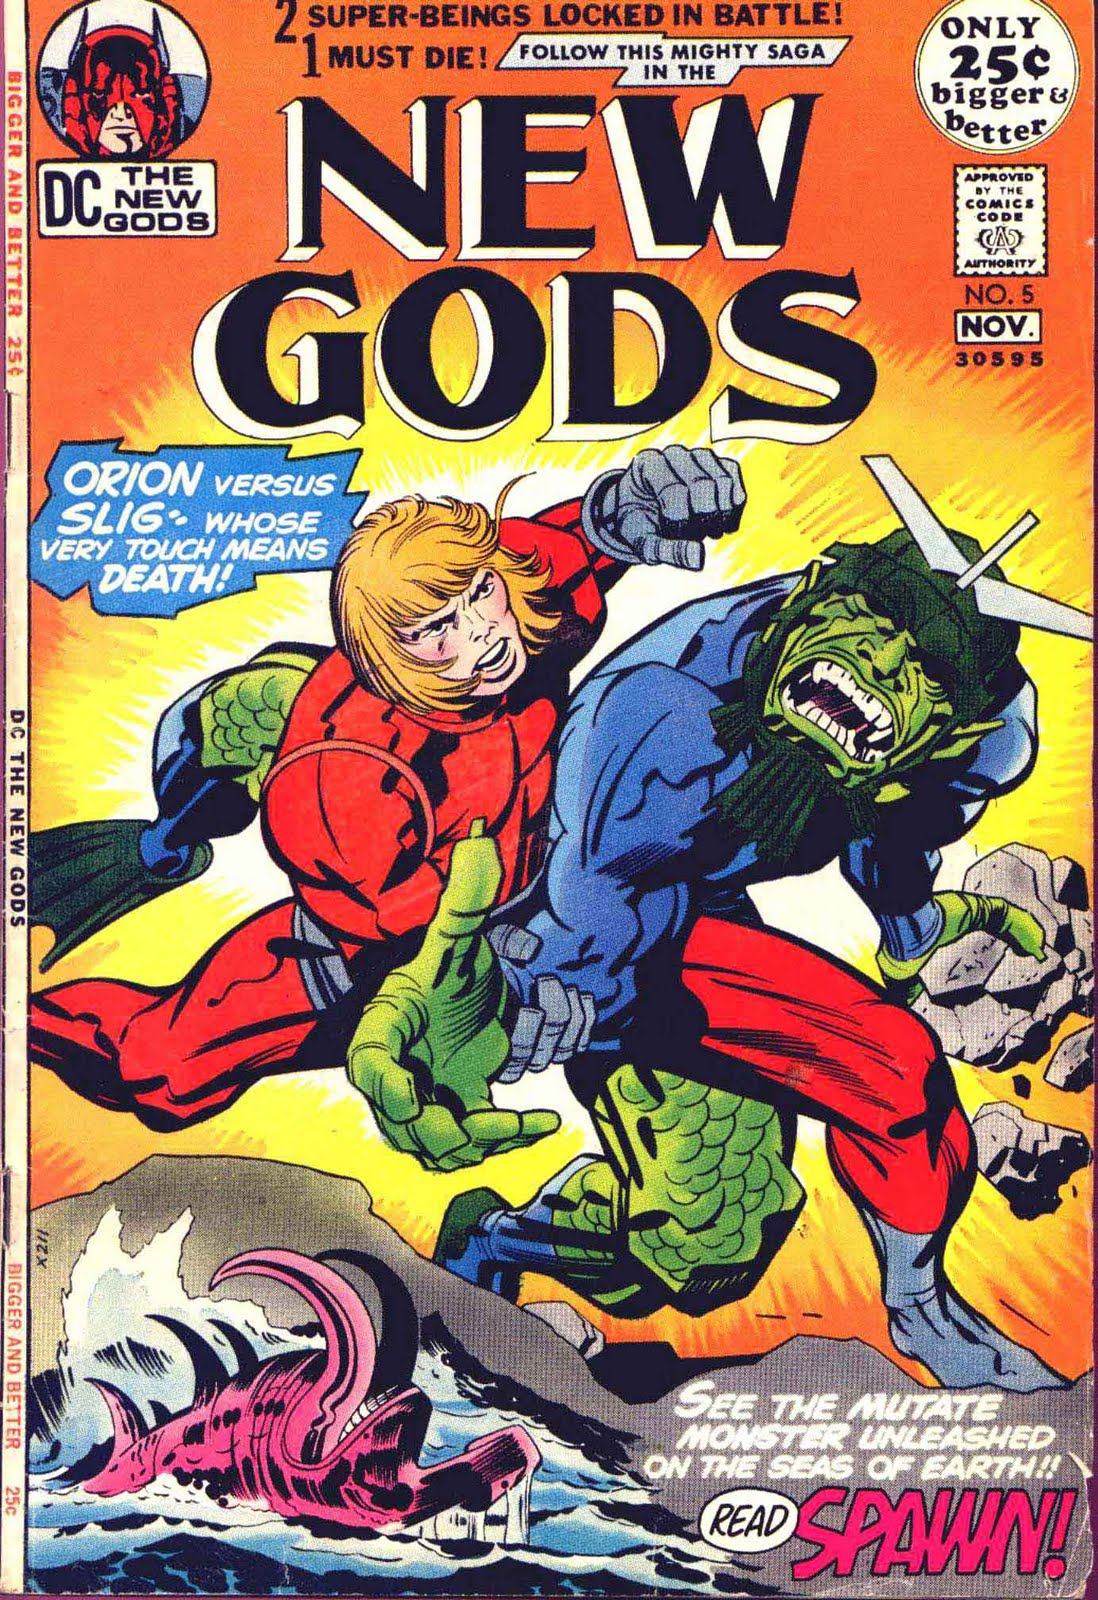 New Gods v1 #5 dc bronze age comic book cover art by Jack Kirby